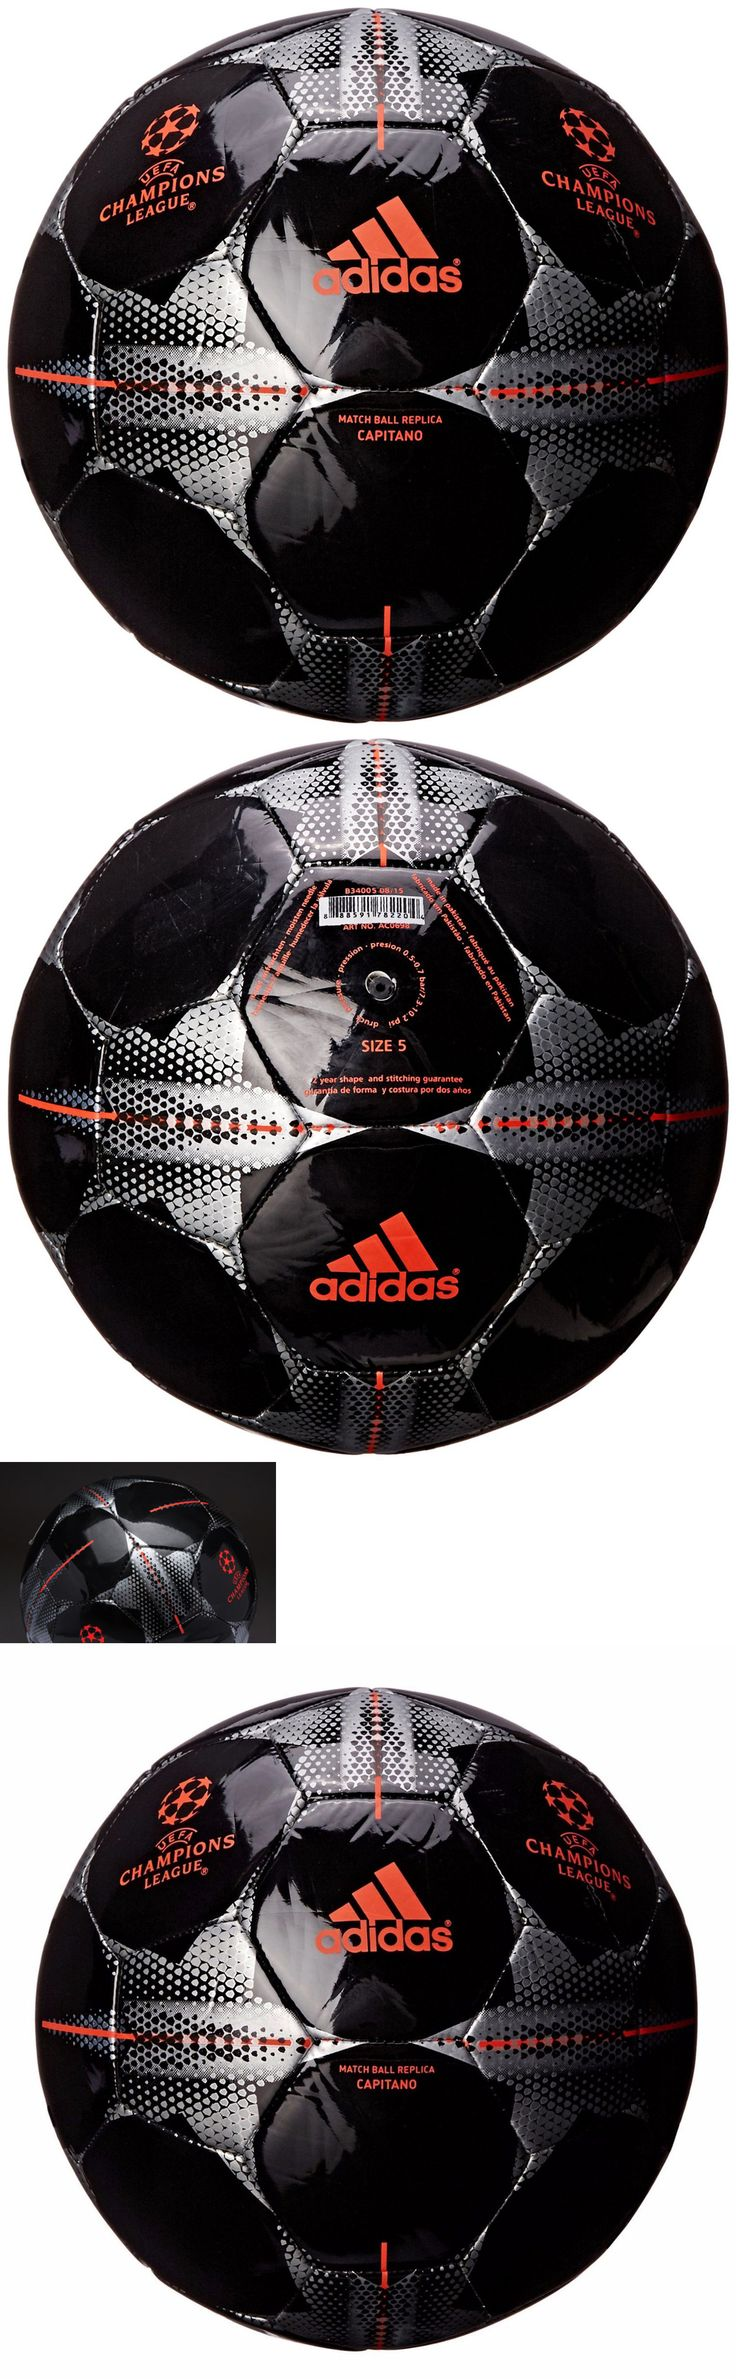 Balls 20863: Adidas Official Soccer Ball Match League Finale Final Fifa World Cup Black Size5 BUY IT NOW ONLY: $77.96